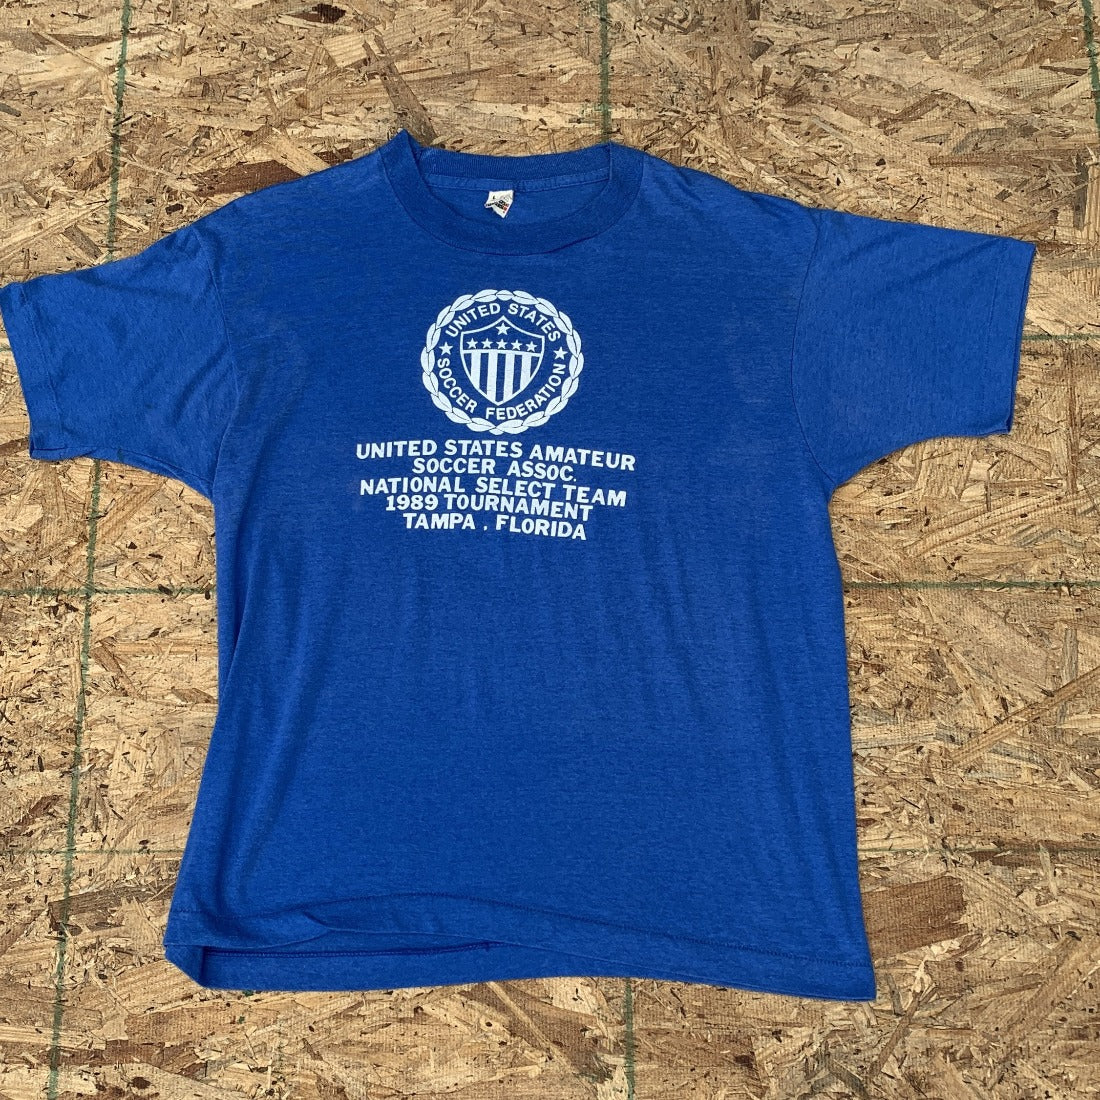 untited states amateur soccer assoc national select team 1989 Tournament Tampa Florida